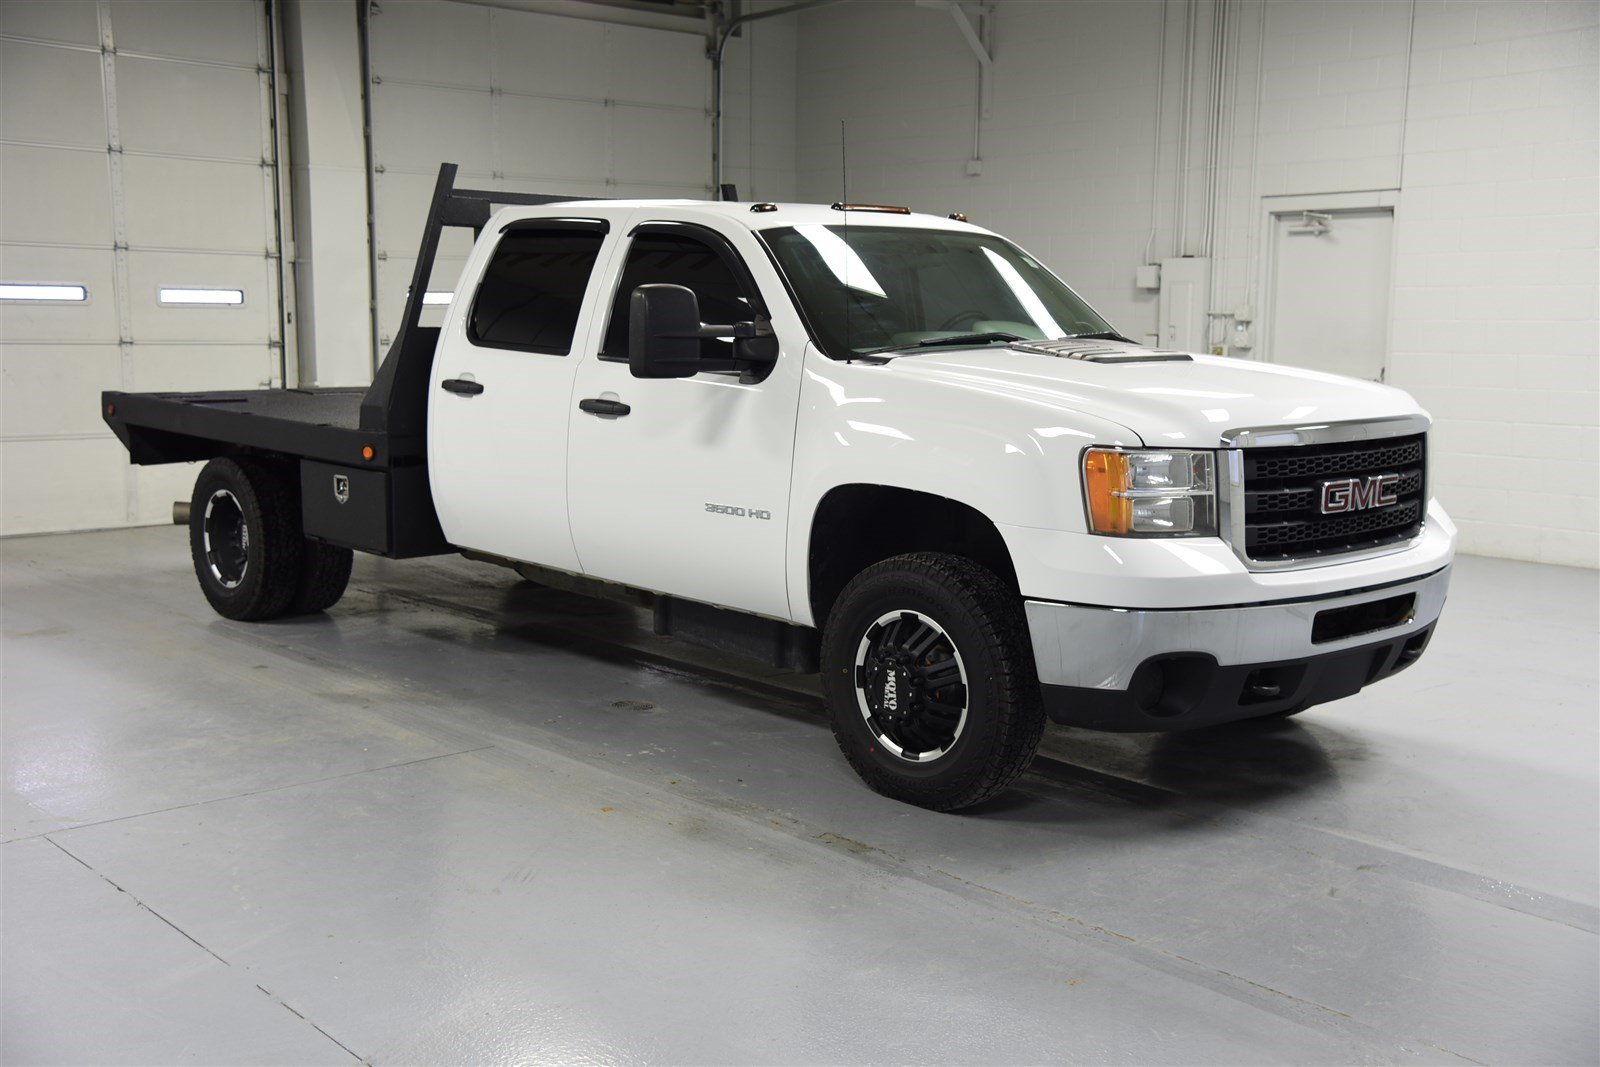 Pre-Owned 2013 GMC Sierra 3500HD Crew Cab 4X4 Flat Bed - Diesel, Dually